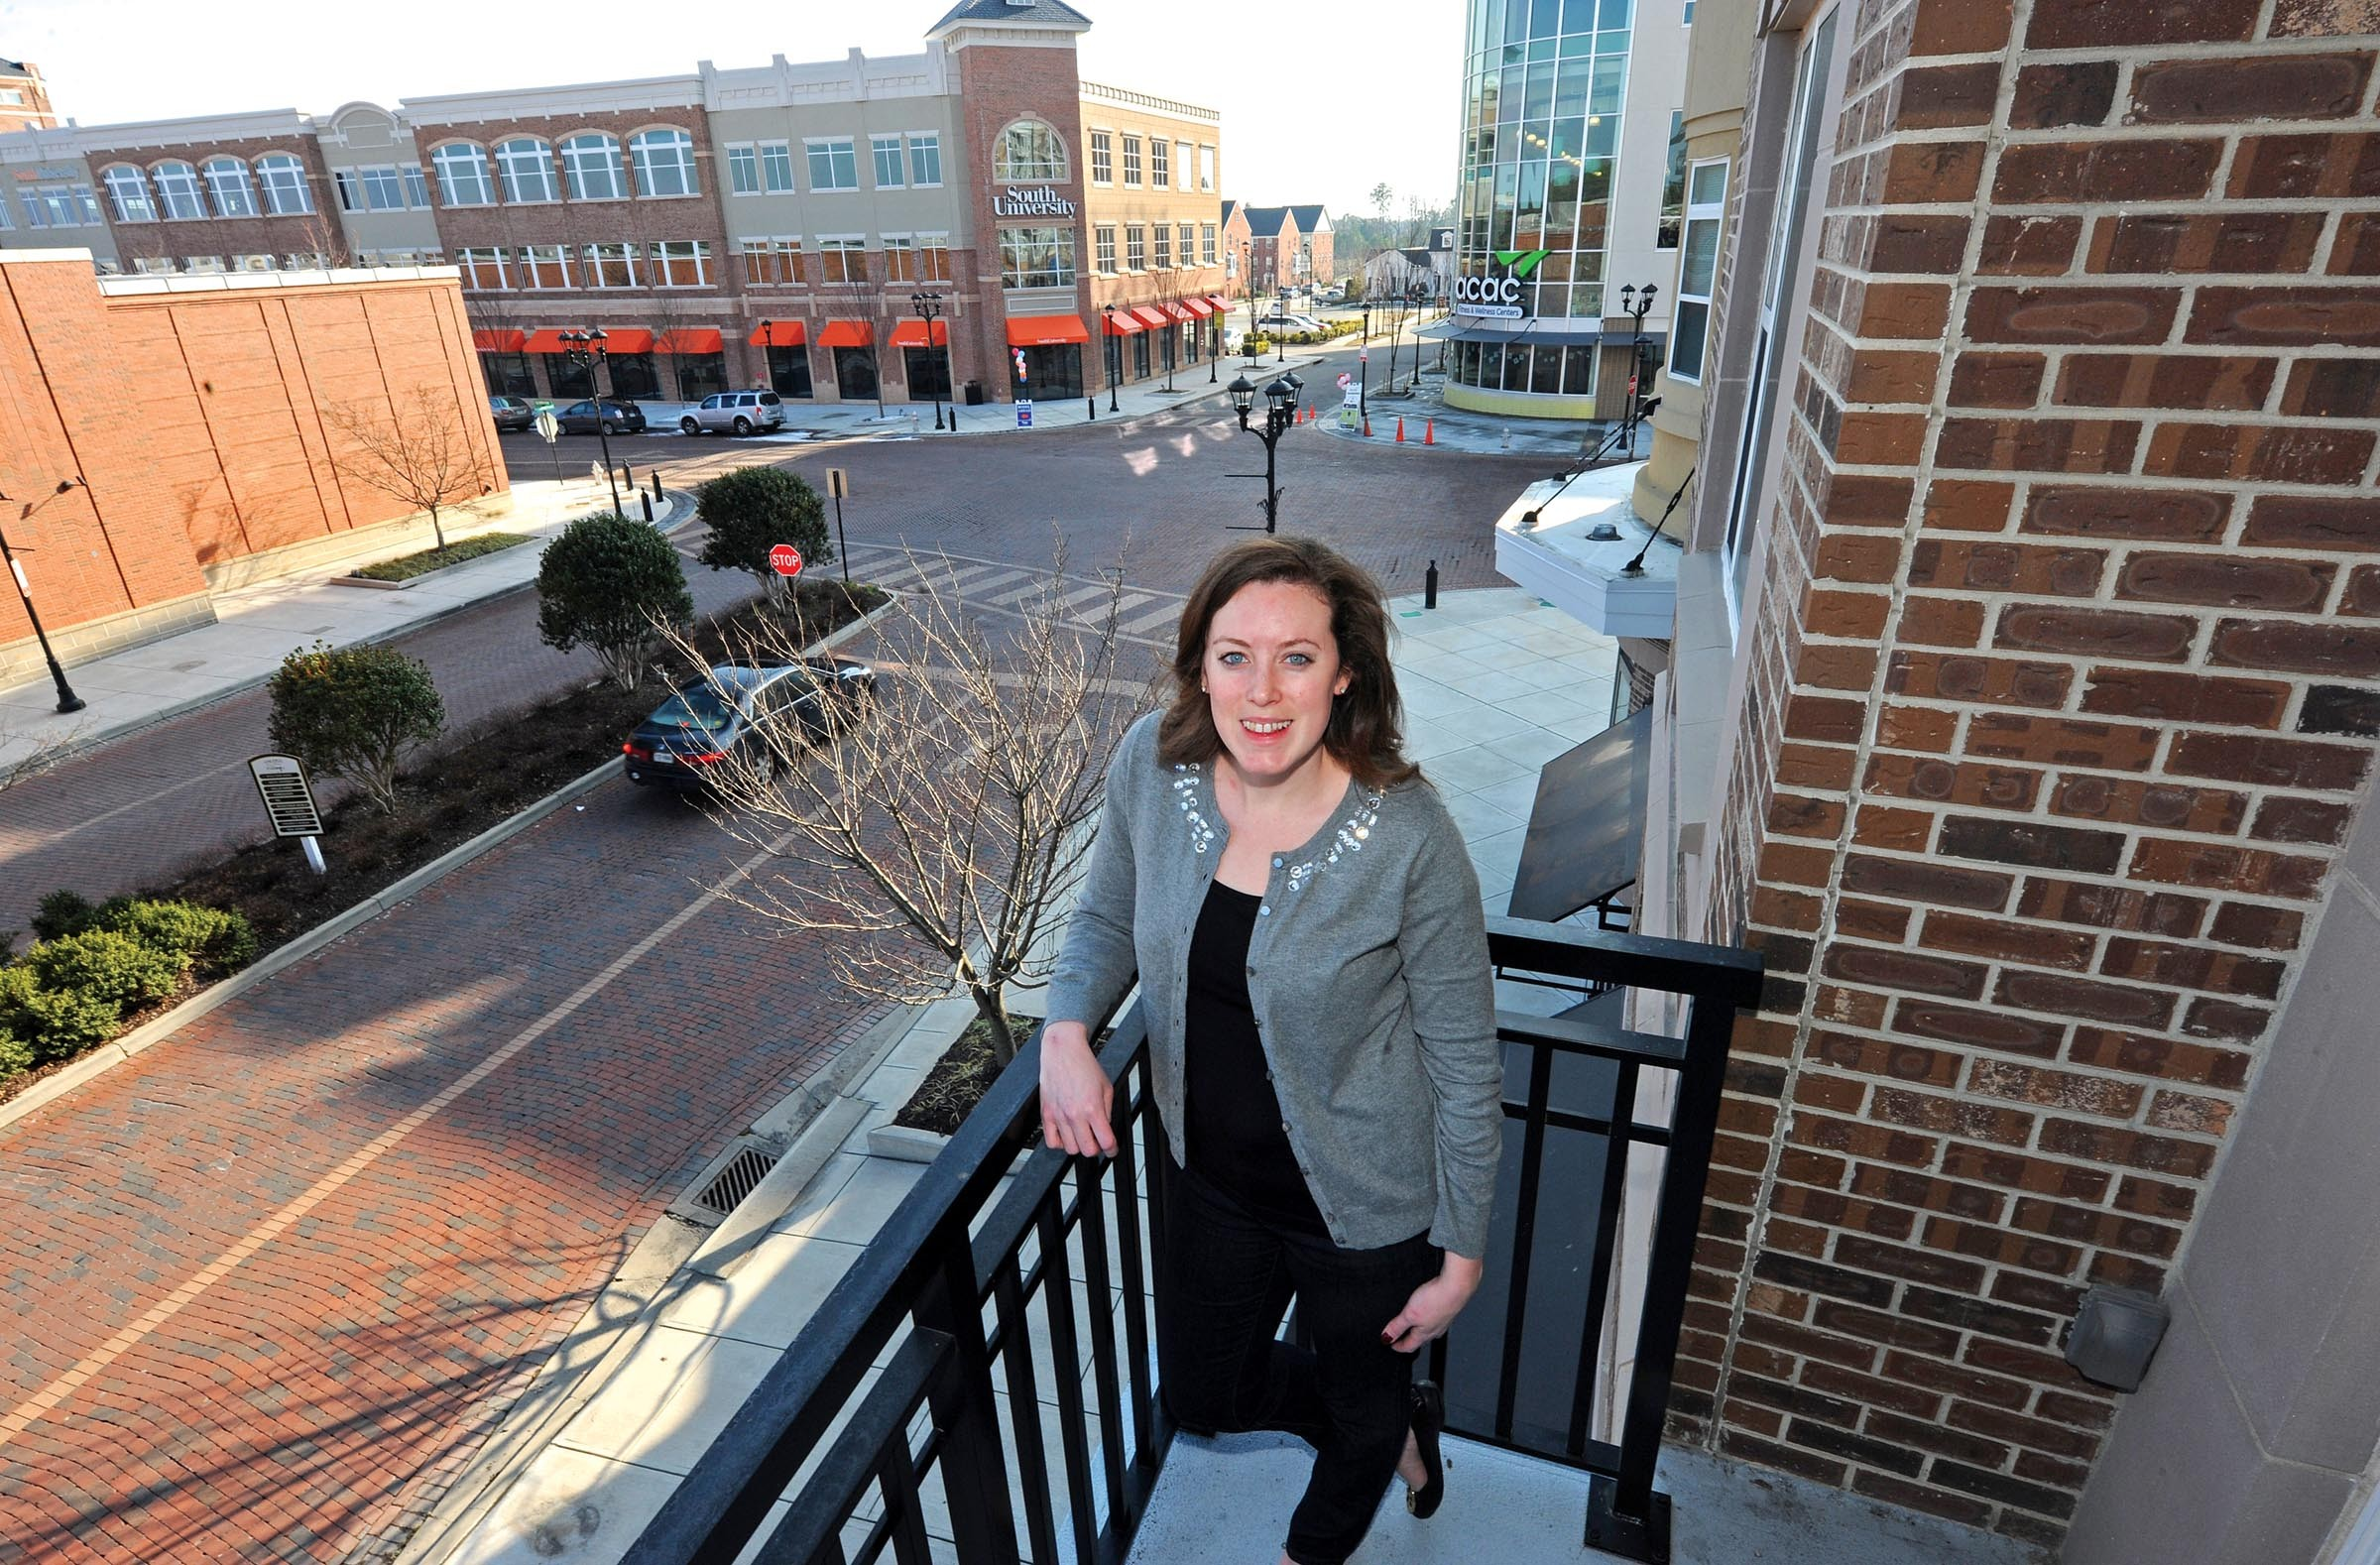 Katelyn Melo, who commutes daily to her job downtown from West Broad Village, relaxes on the balcony of her apartment overlooking Gathering Place. - SCOTT ELMQUIST